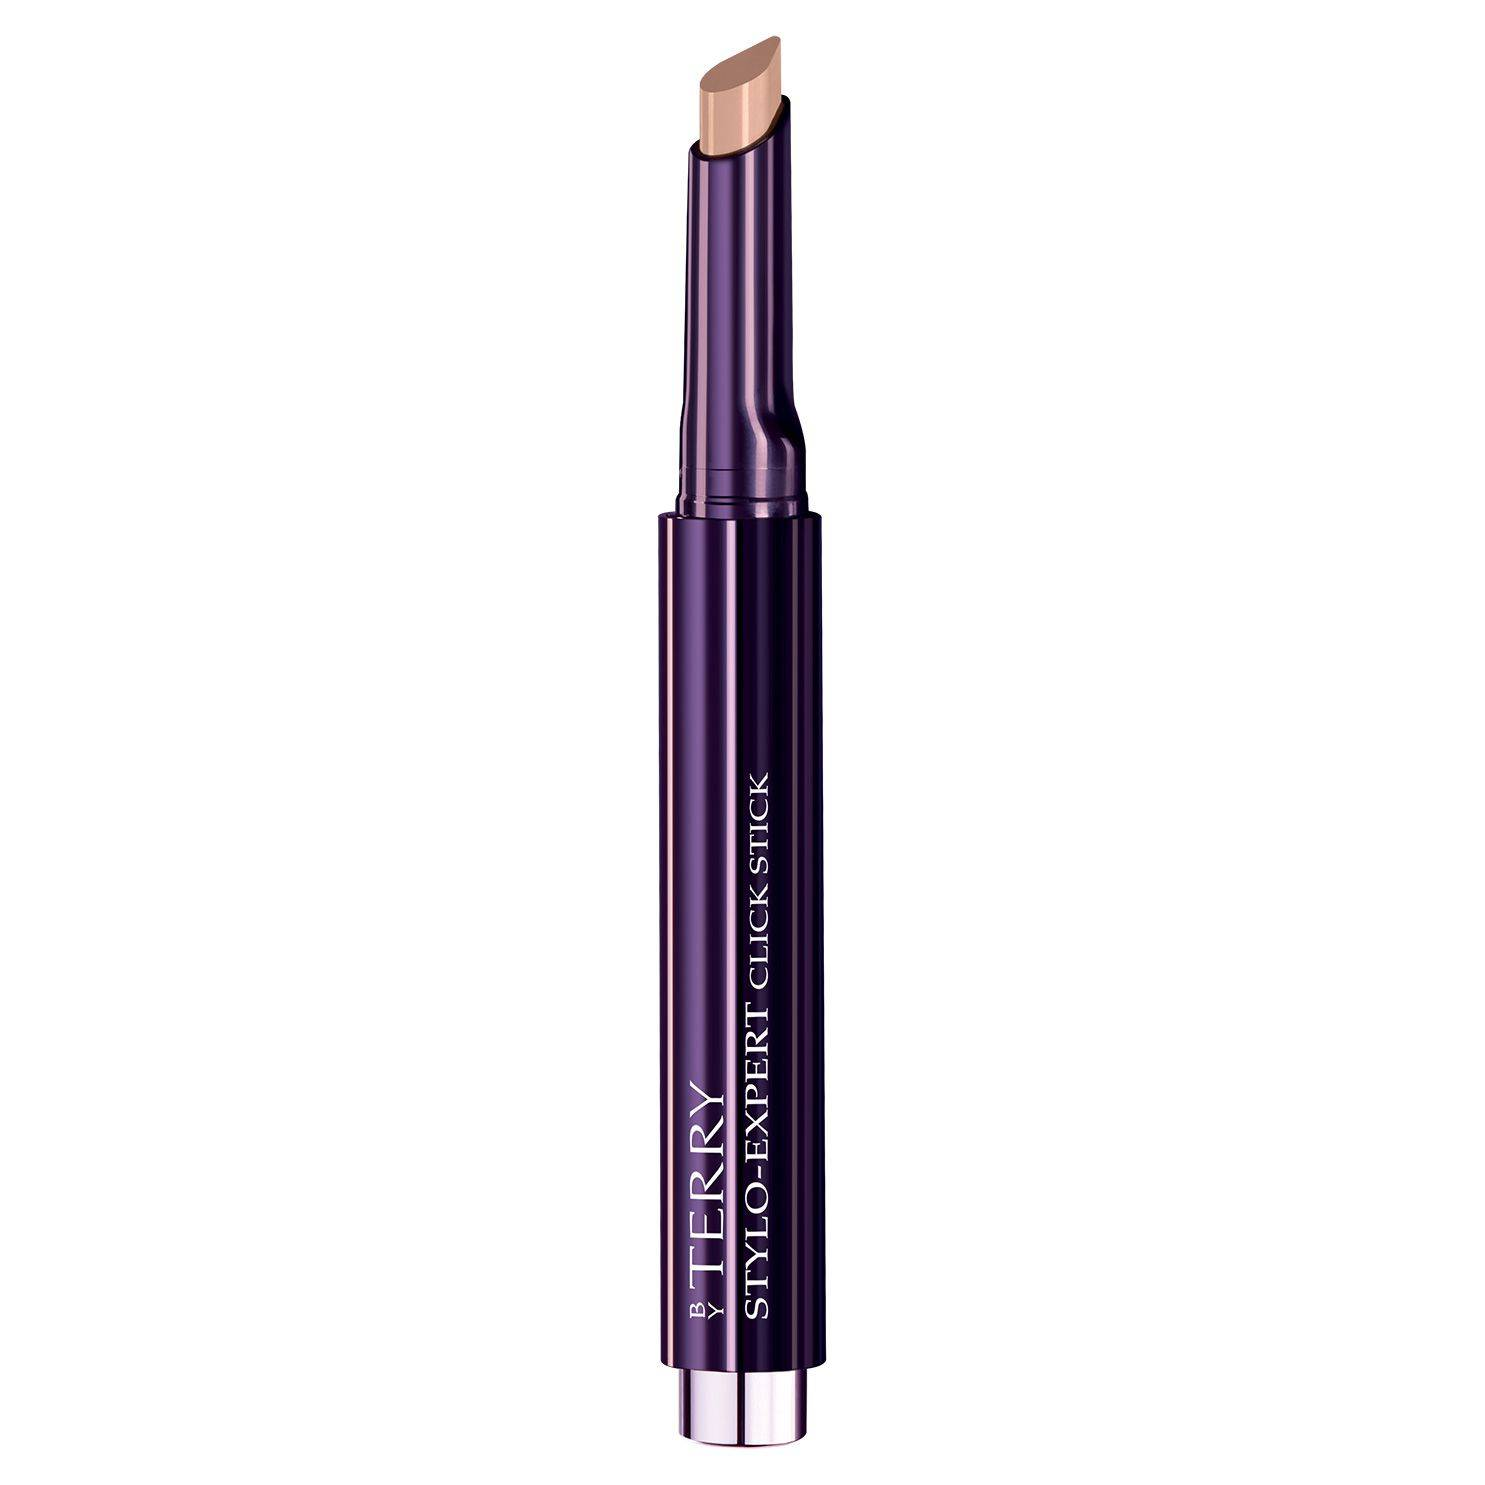 Stylo-Expert Click Stick - Correcteur Stick, BY TERRY